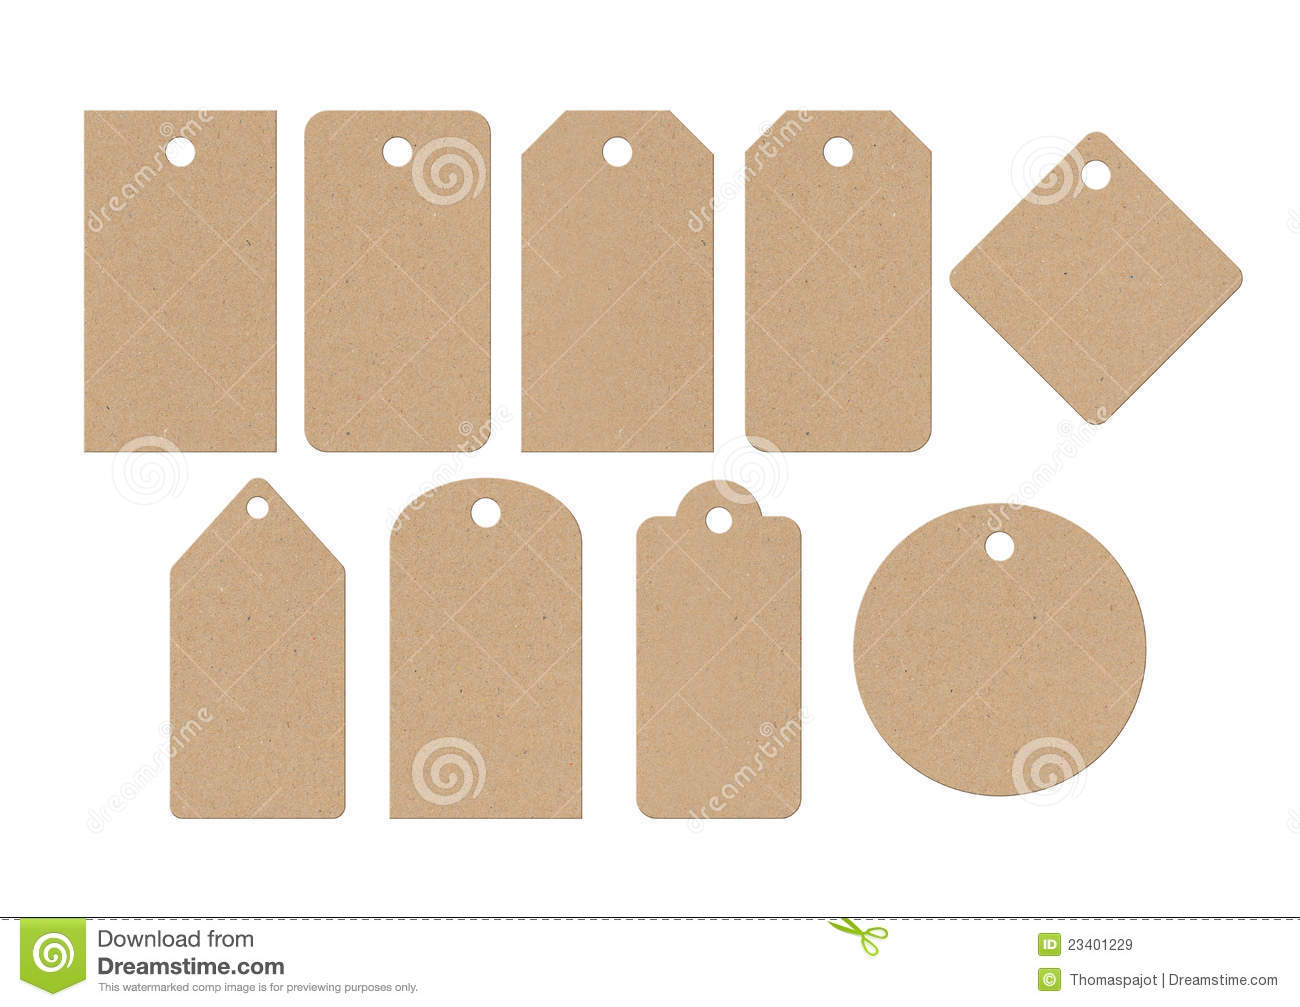 Differents forms of cardboard labels isolated on white background.